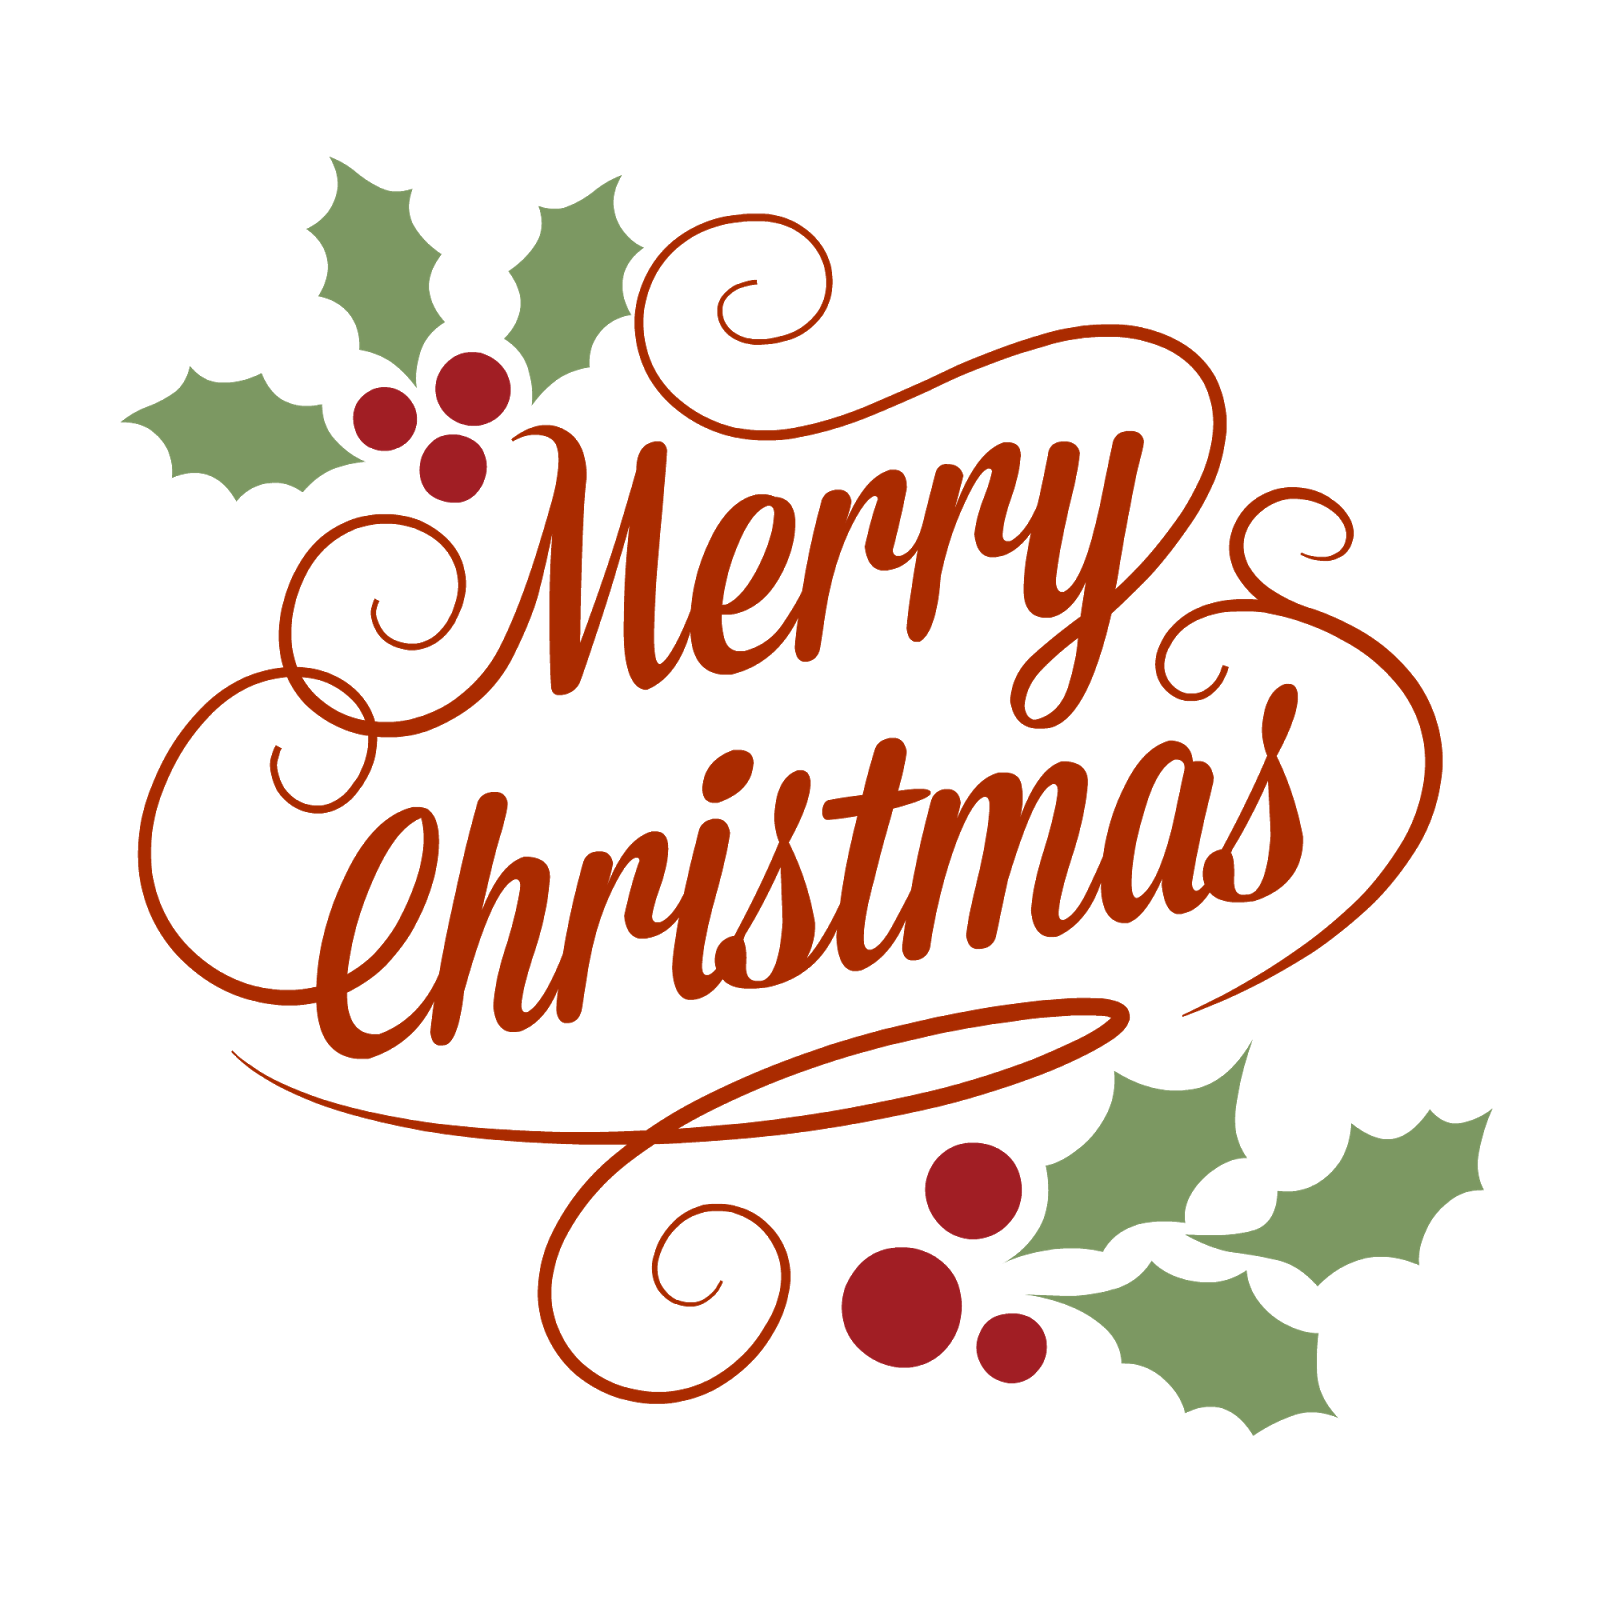 Transparent Background Vintage Merry Christmas Clipart.